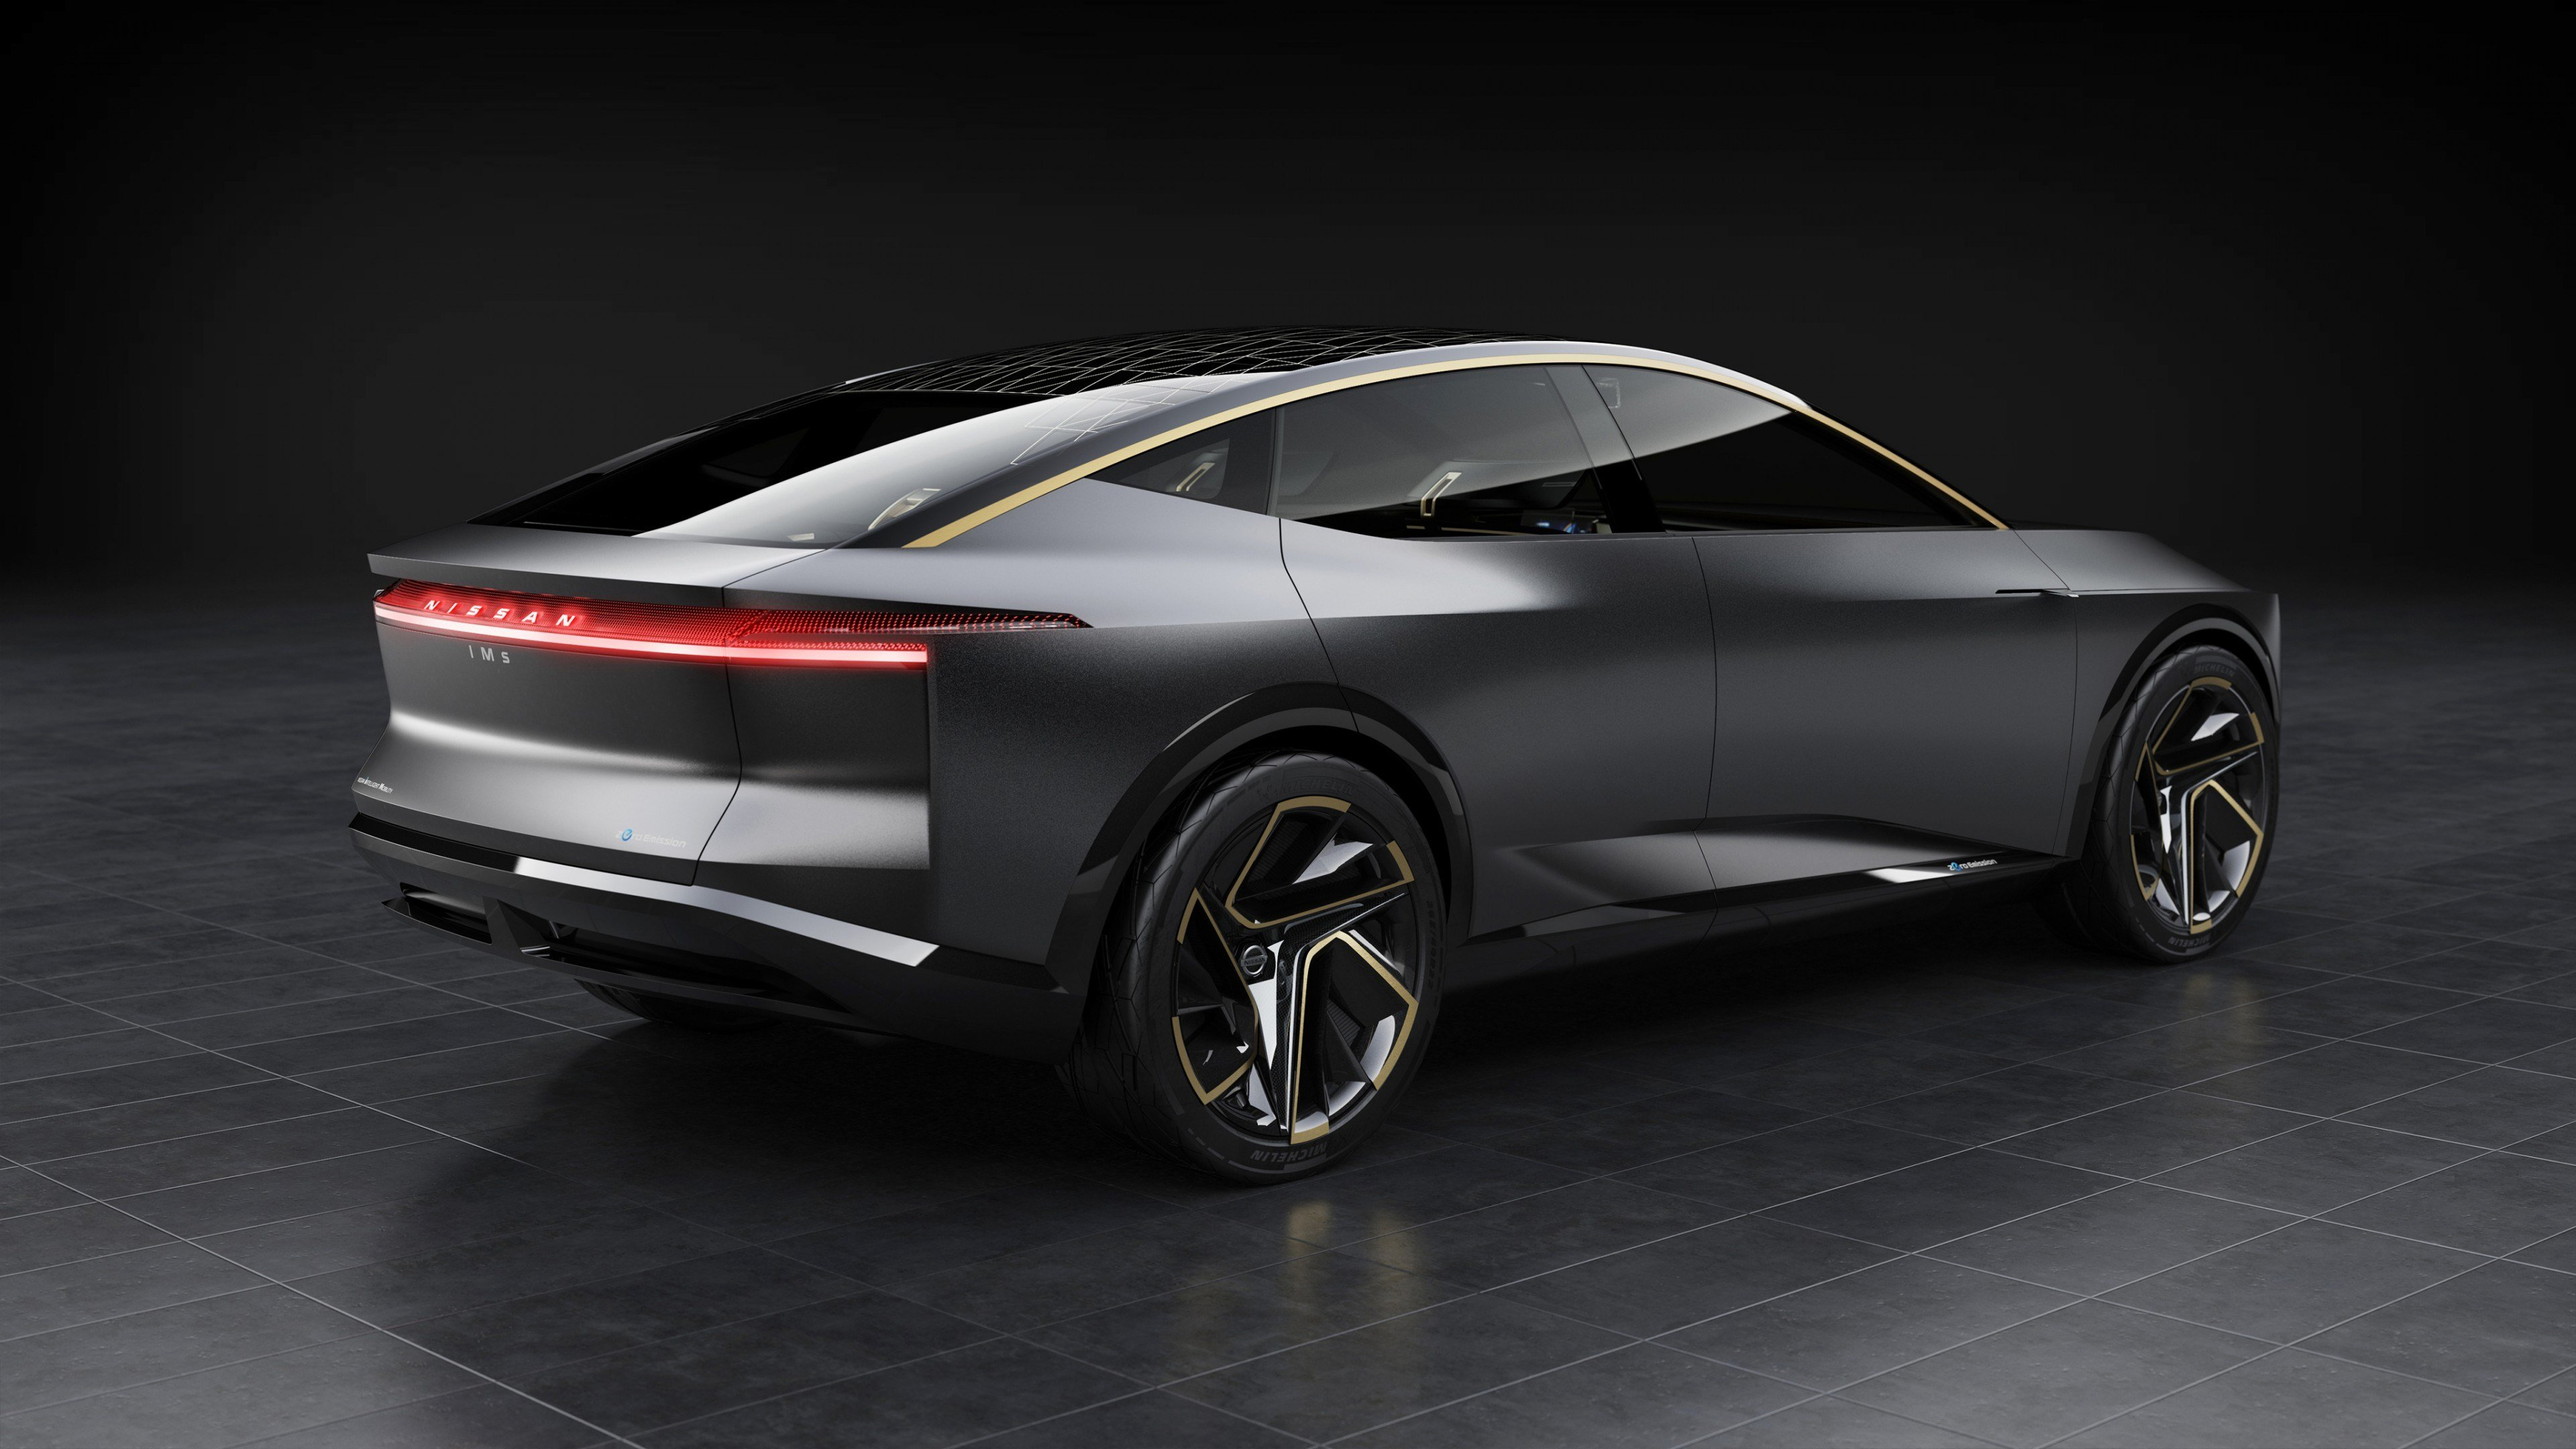 Latest Nissan Ims Concept 2019 4K 3 Wallpaper Hd Car Wallpapers Free Download